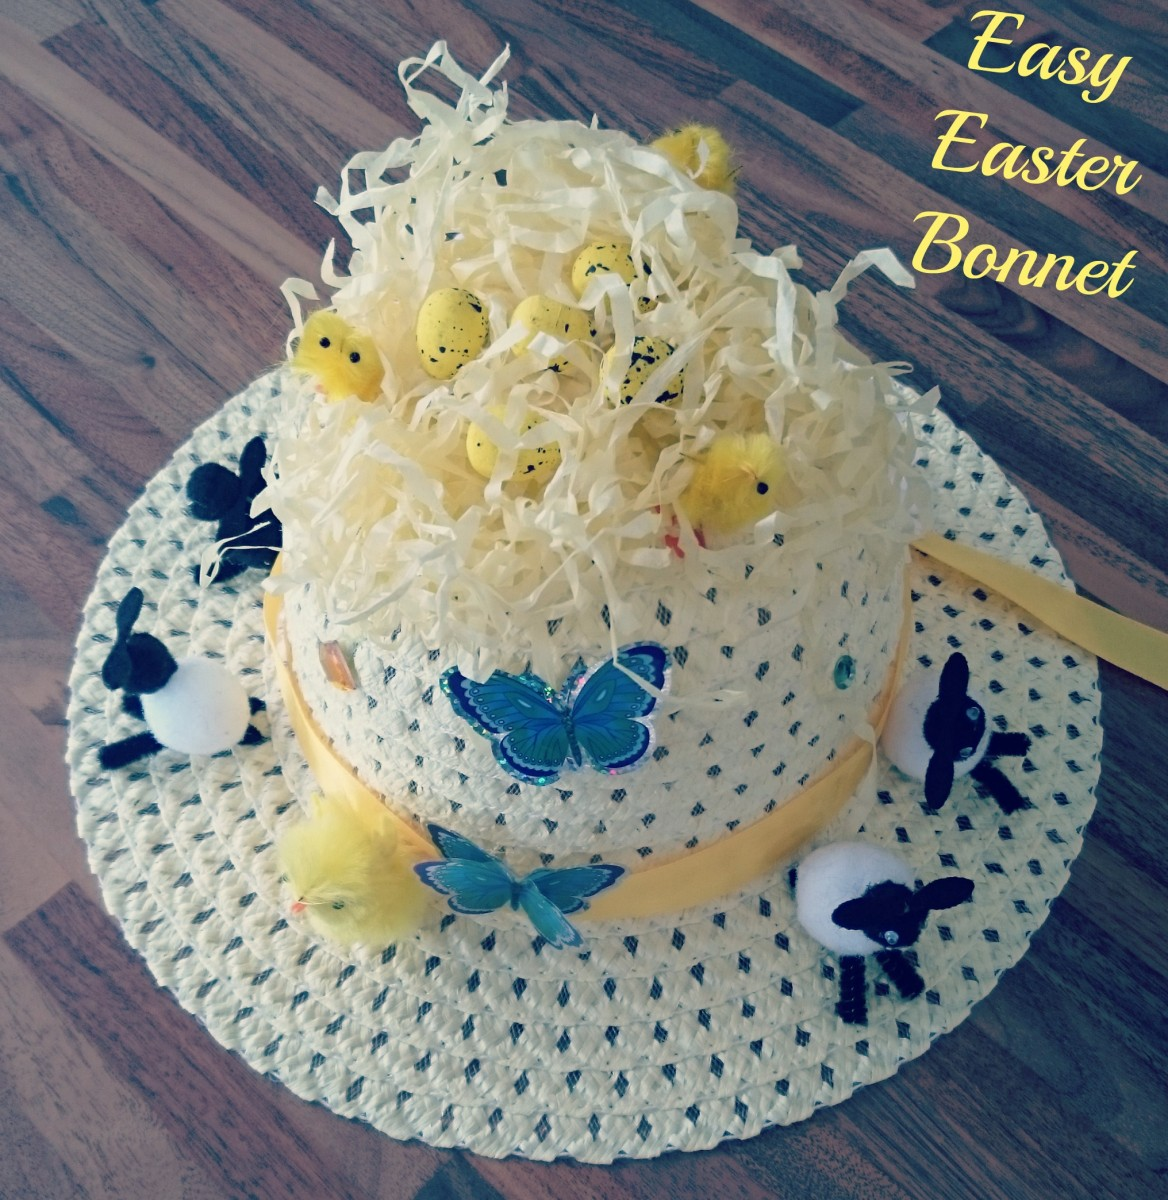 easy easter bonnet complete